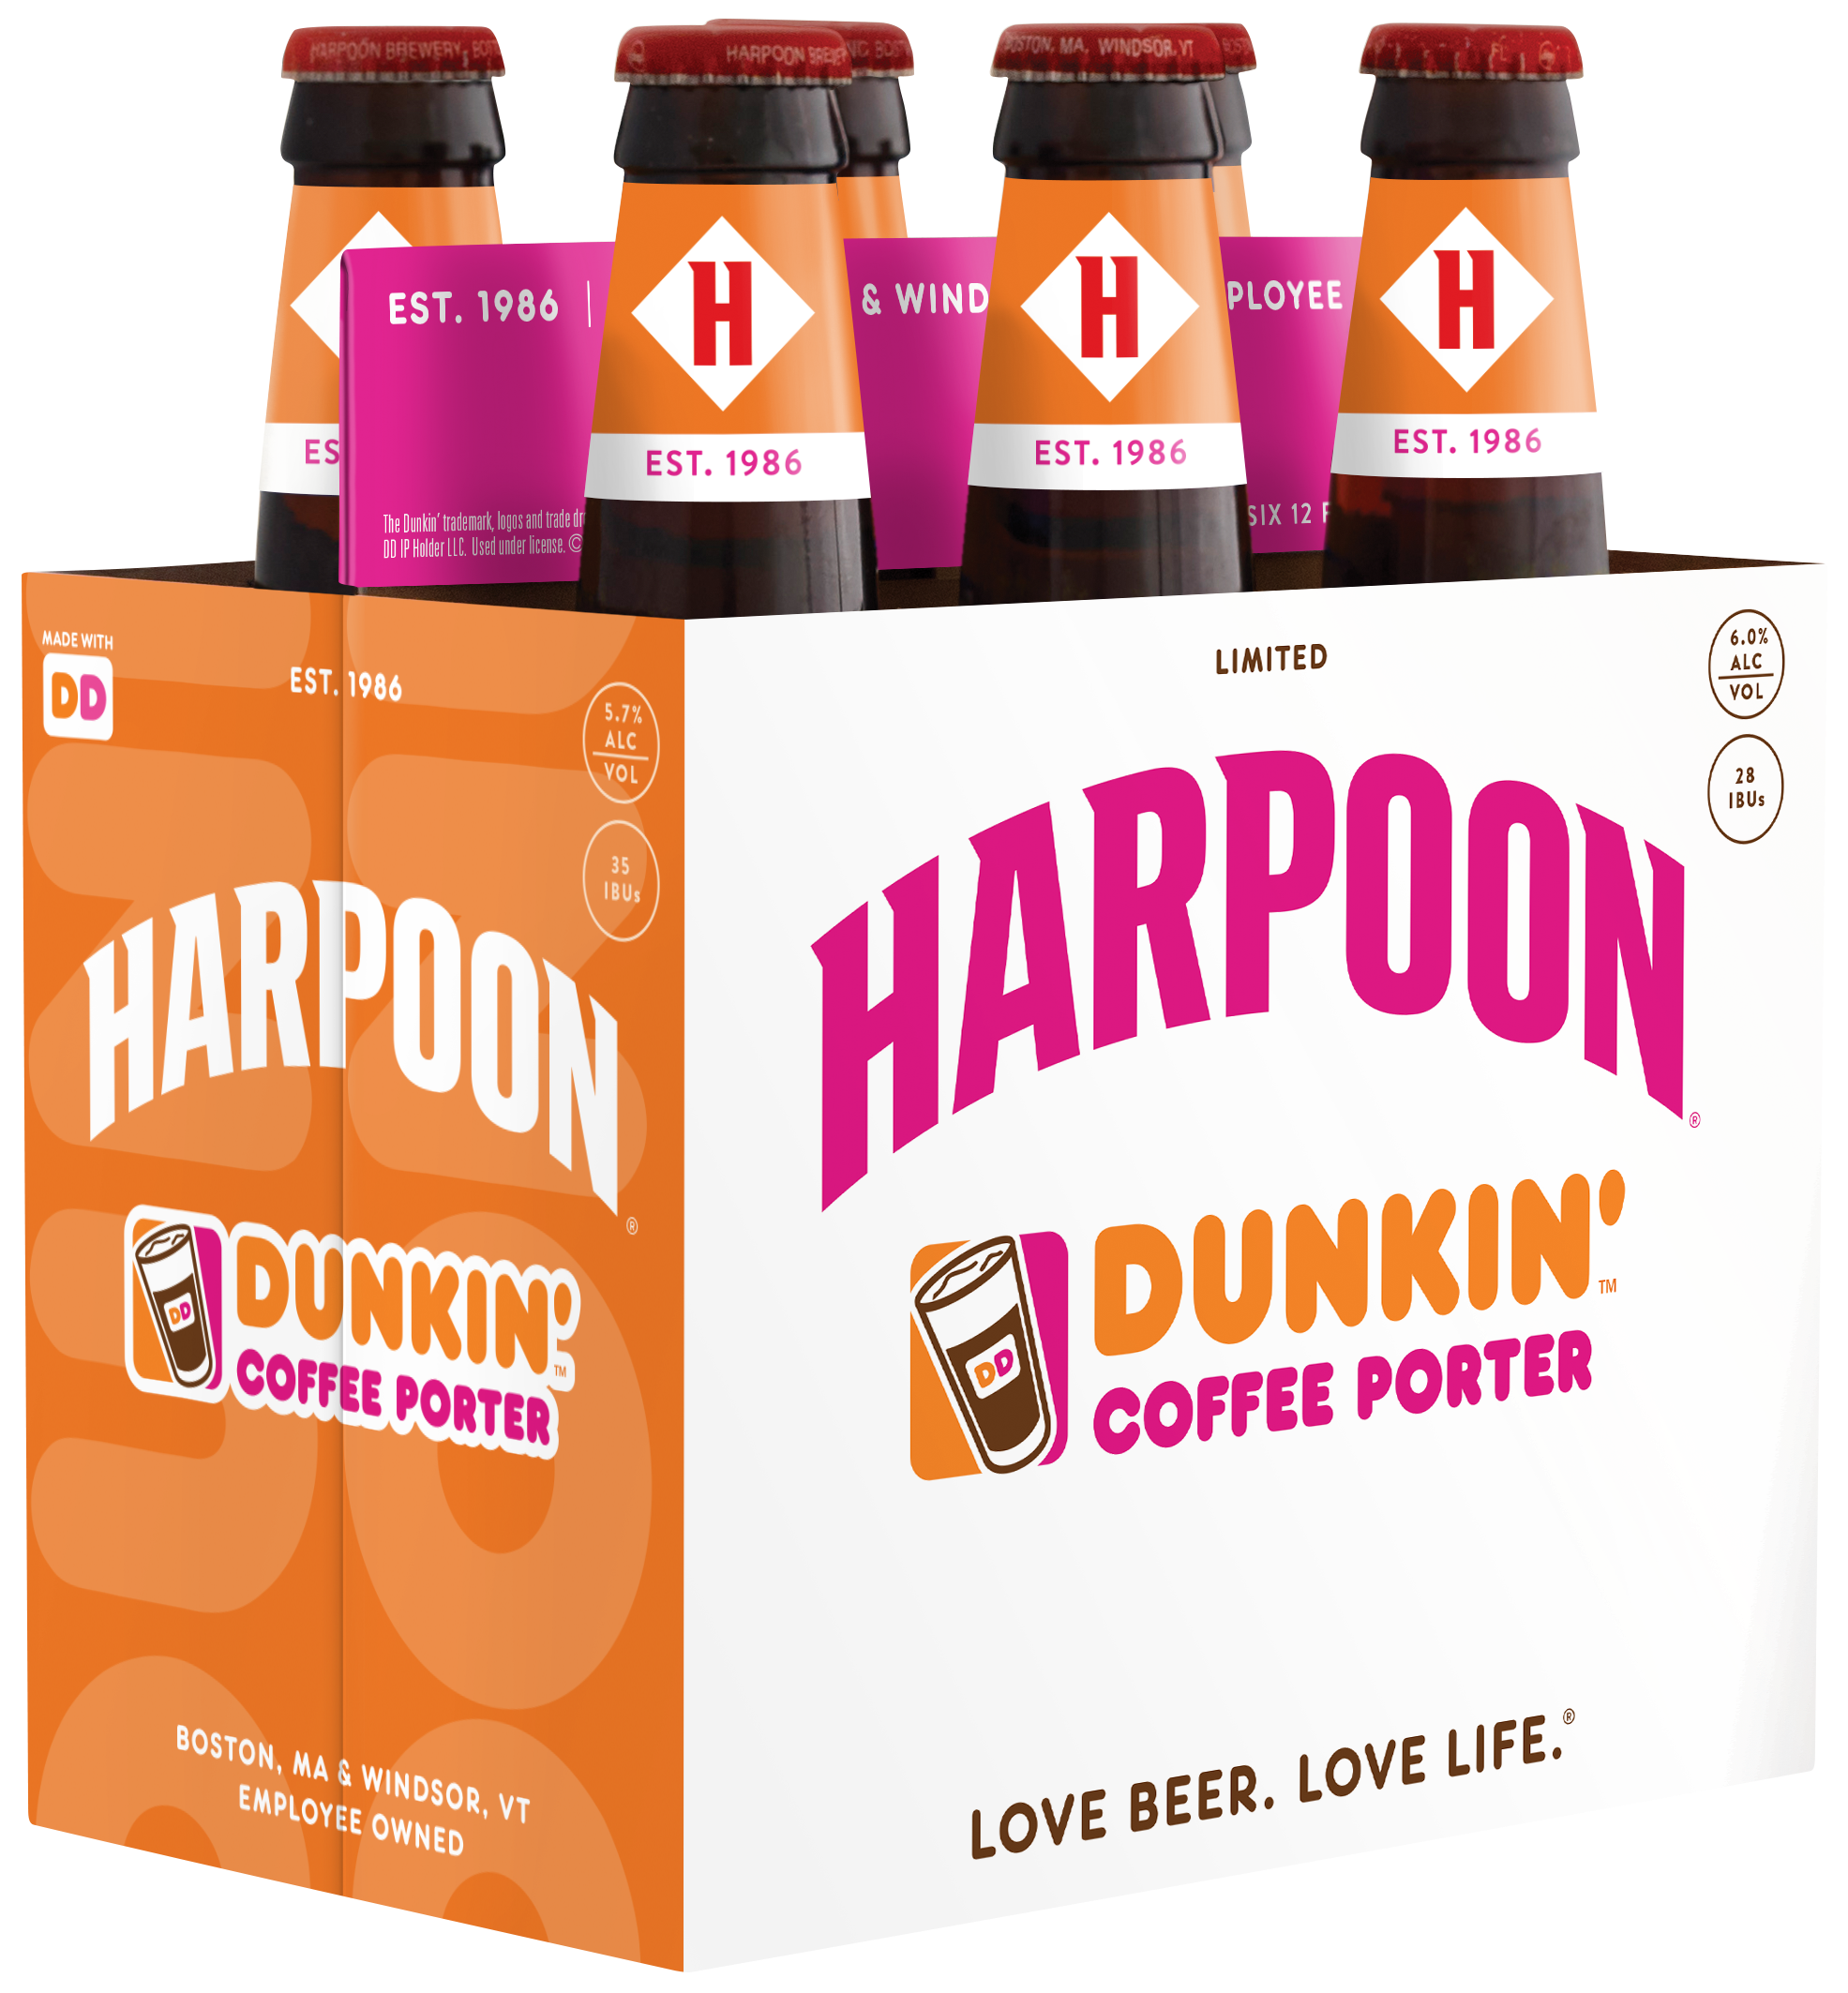 Dunkin' and Harpoon Brewery team up for a Guilty Pleasure coffee pale ale